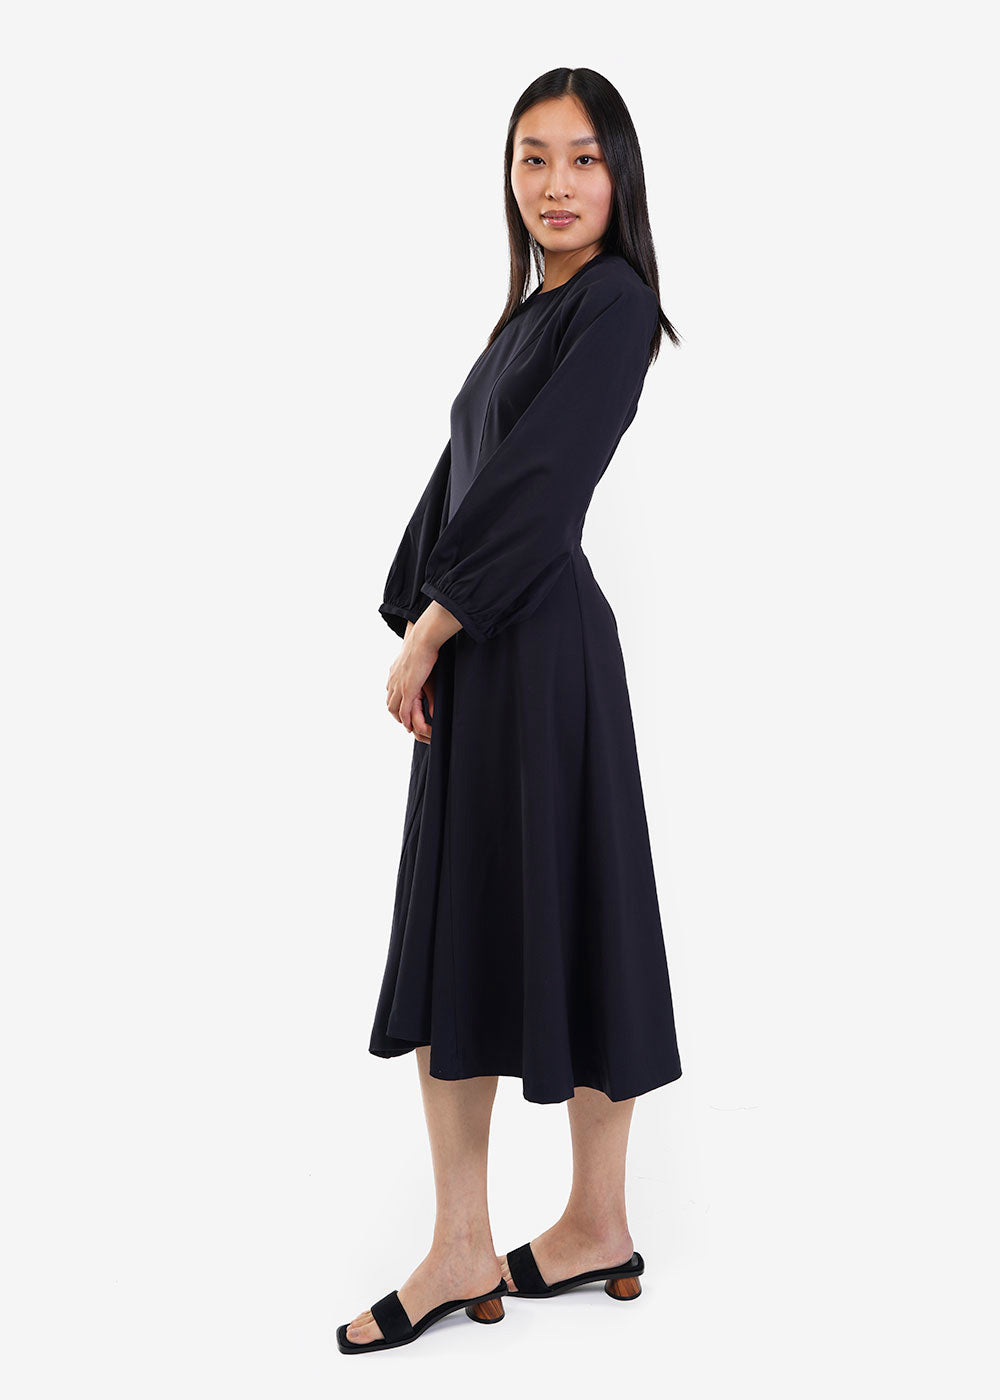 WRAY Date Dress — Shop sustainable fashion and slow fashion at New Classics Studios